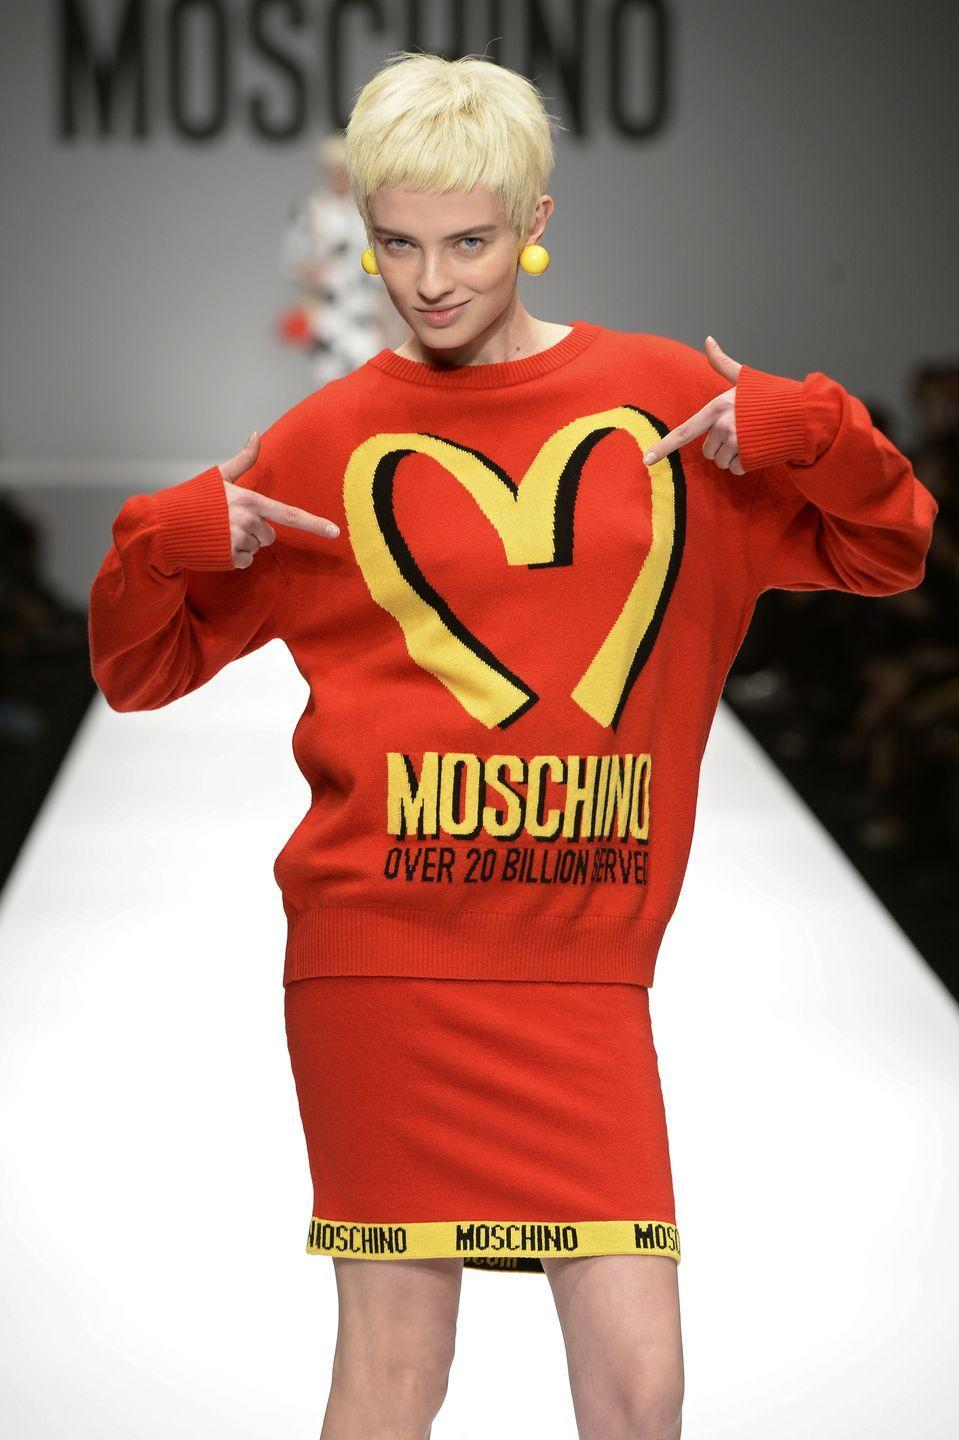 <p>Designer Jeremy Scott sent McDonald's-inspired looks down the runway for Italian fashion brand Moschino in 2014. Within two weeks, a number of products (including this sweater) had already sold out.</p>